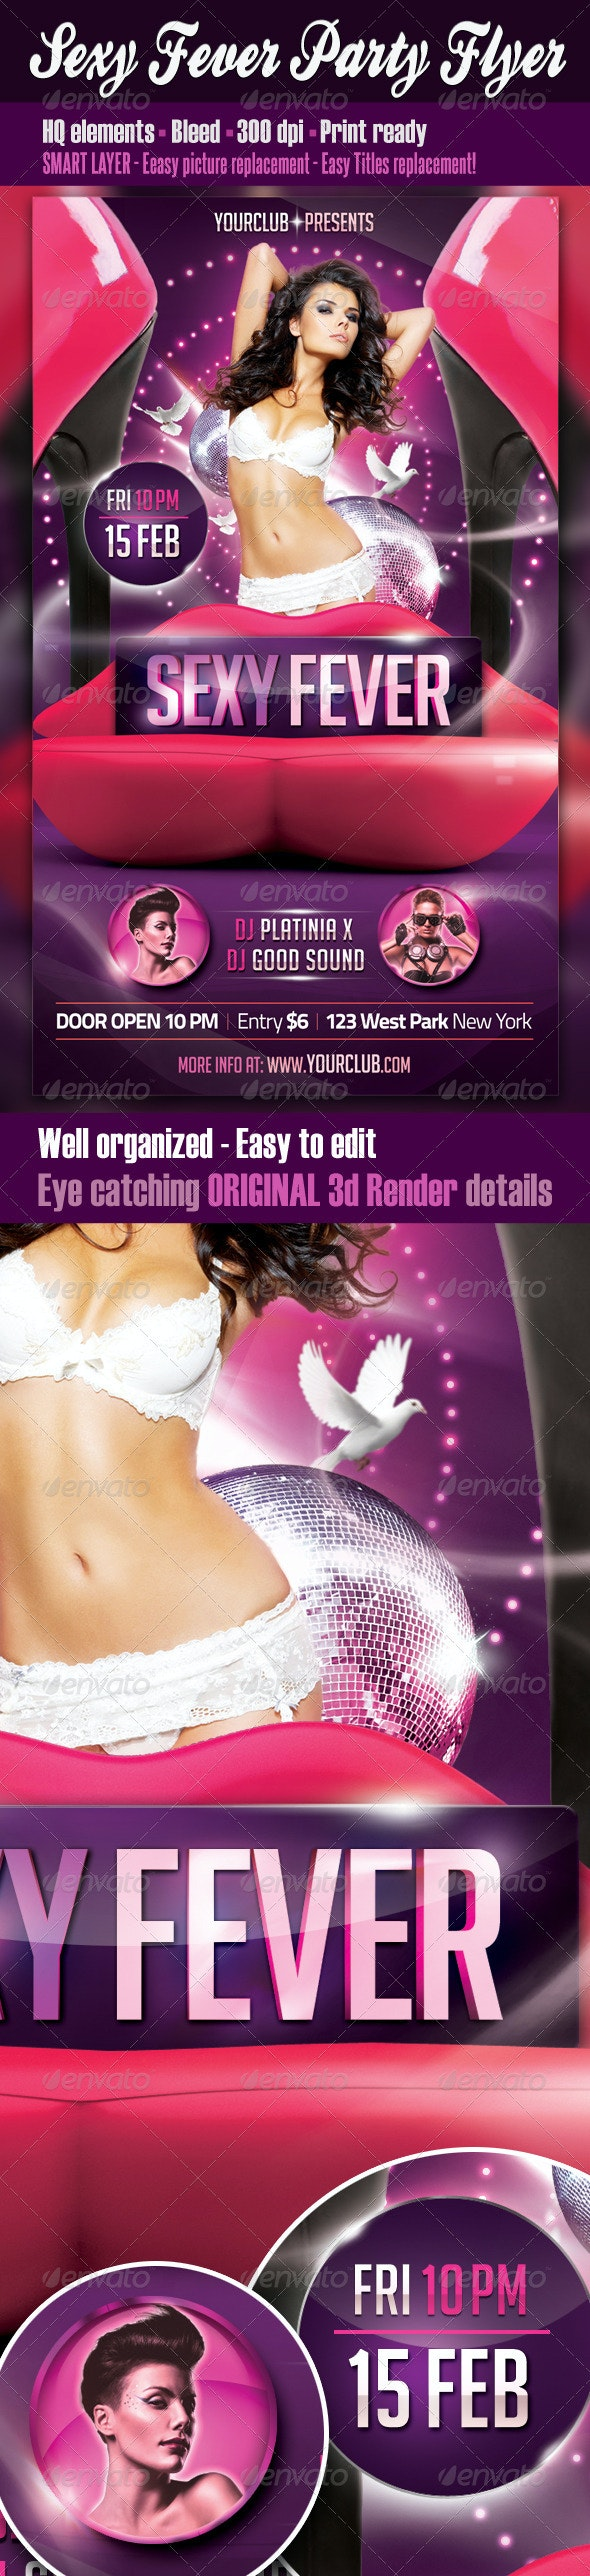 Sexy Fever Party Flyer - Clubs & Parties Events